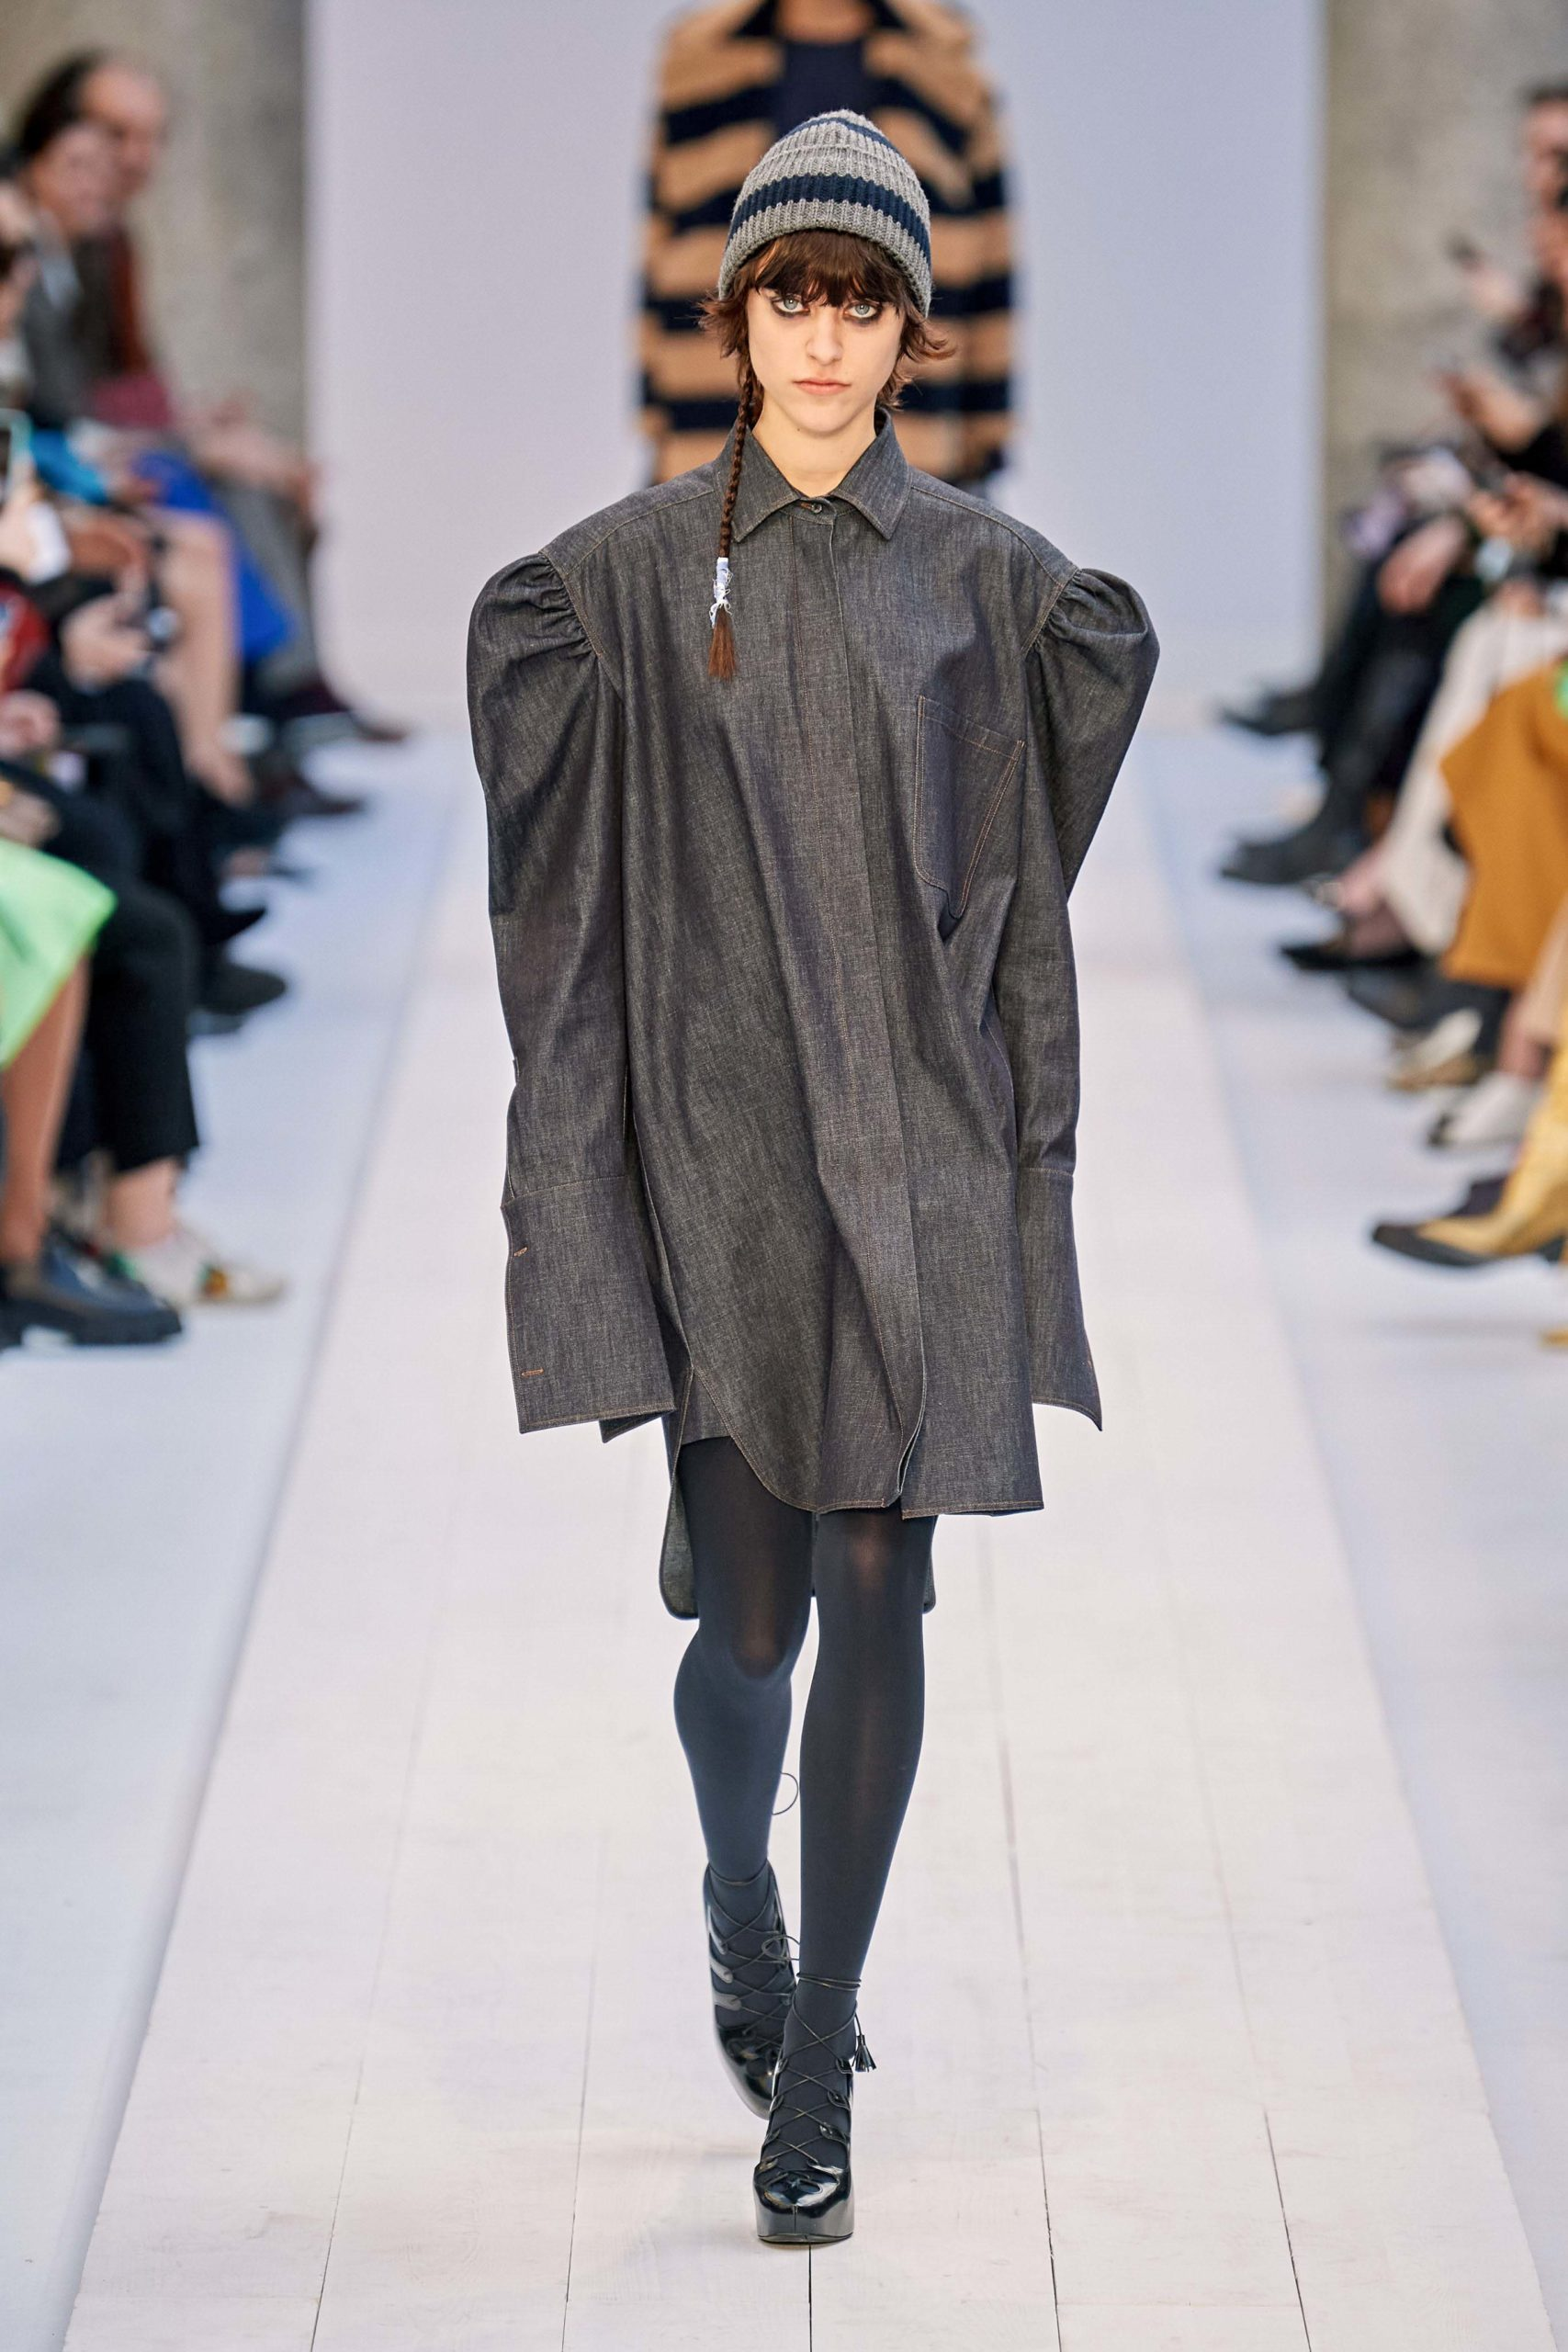 Max Mara Fall 2020 trends runway coverage Ready To Wear Vogue grey manche bold sleeves